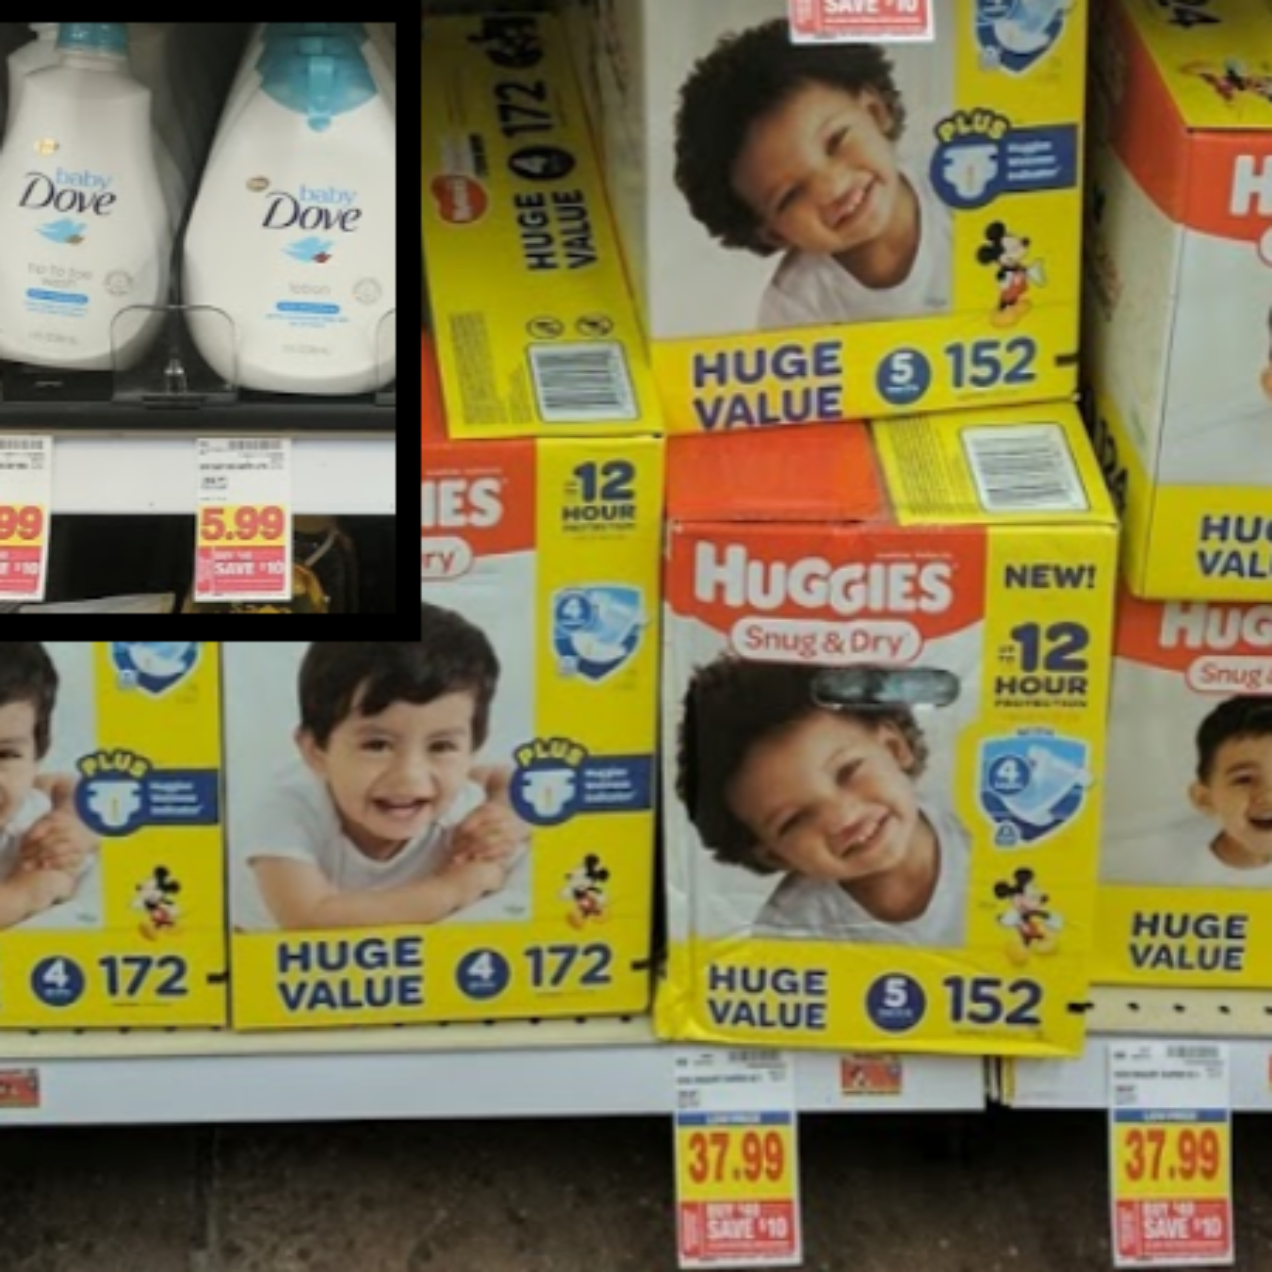 One Huge Box of Huggies + Baby Dove Item Only $20.48 Using Digital Coupons at Kroger ($43.98 Value)